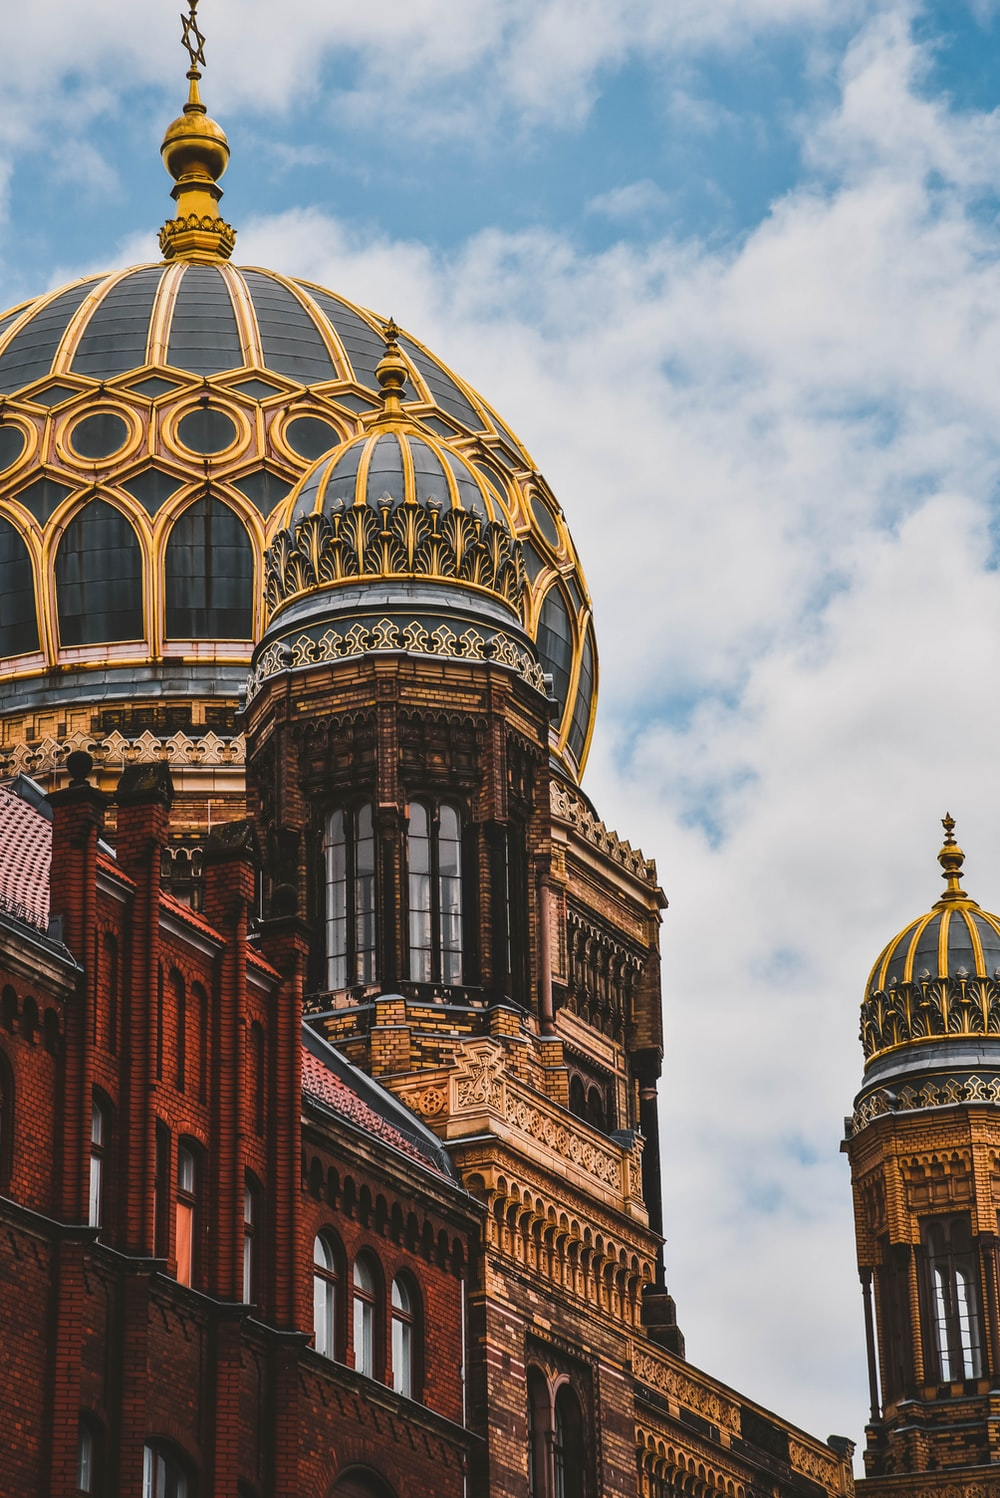 yellow and black domed building during daytime